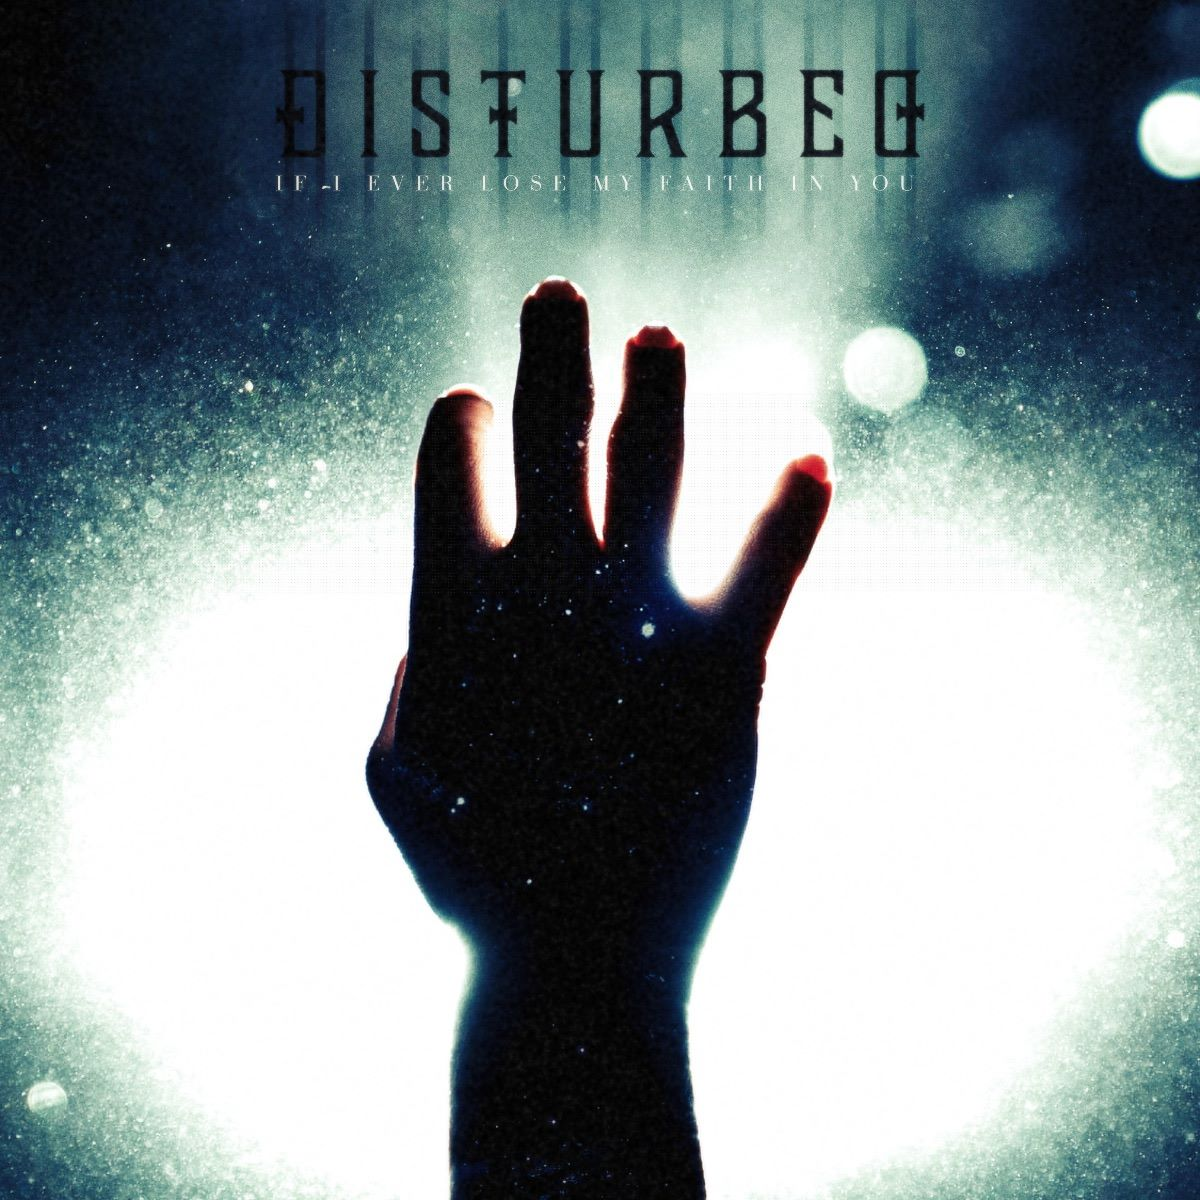 disturbed - If I Ever Lose My Faith In You -cover single cover